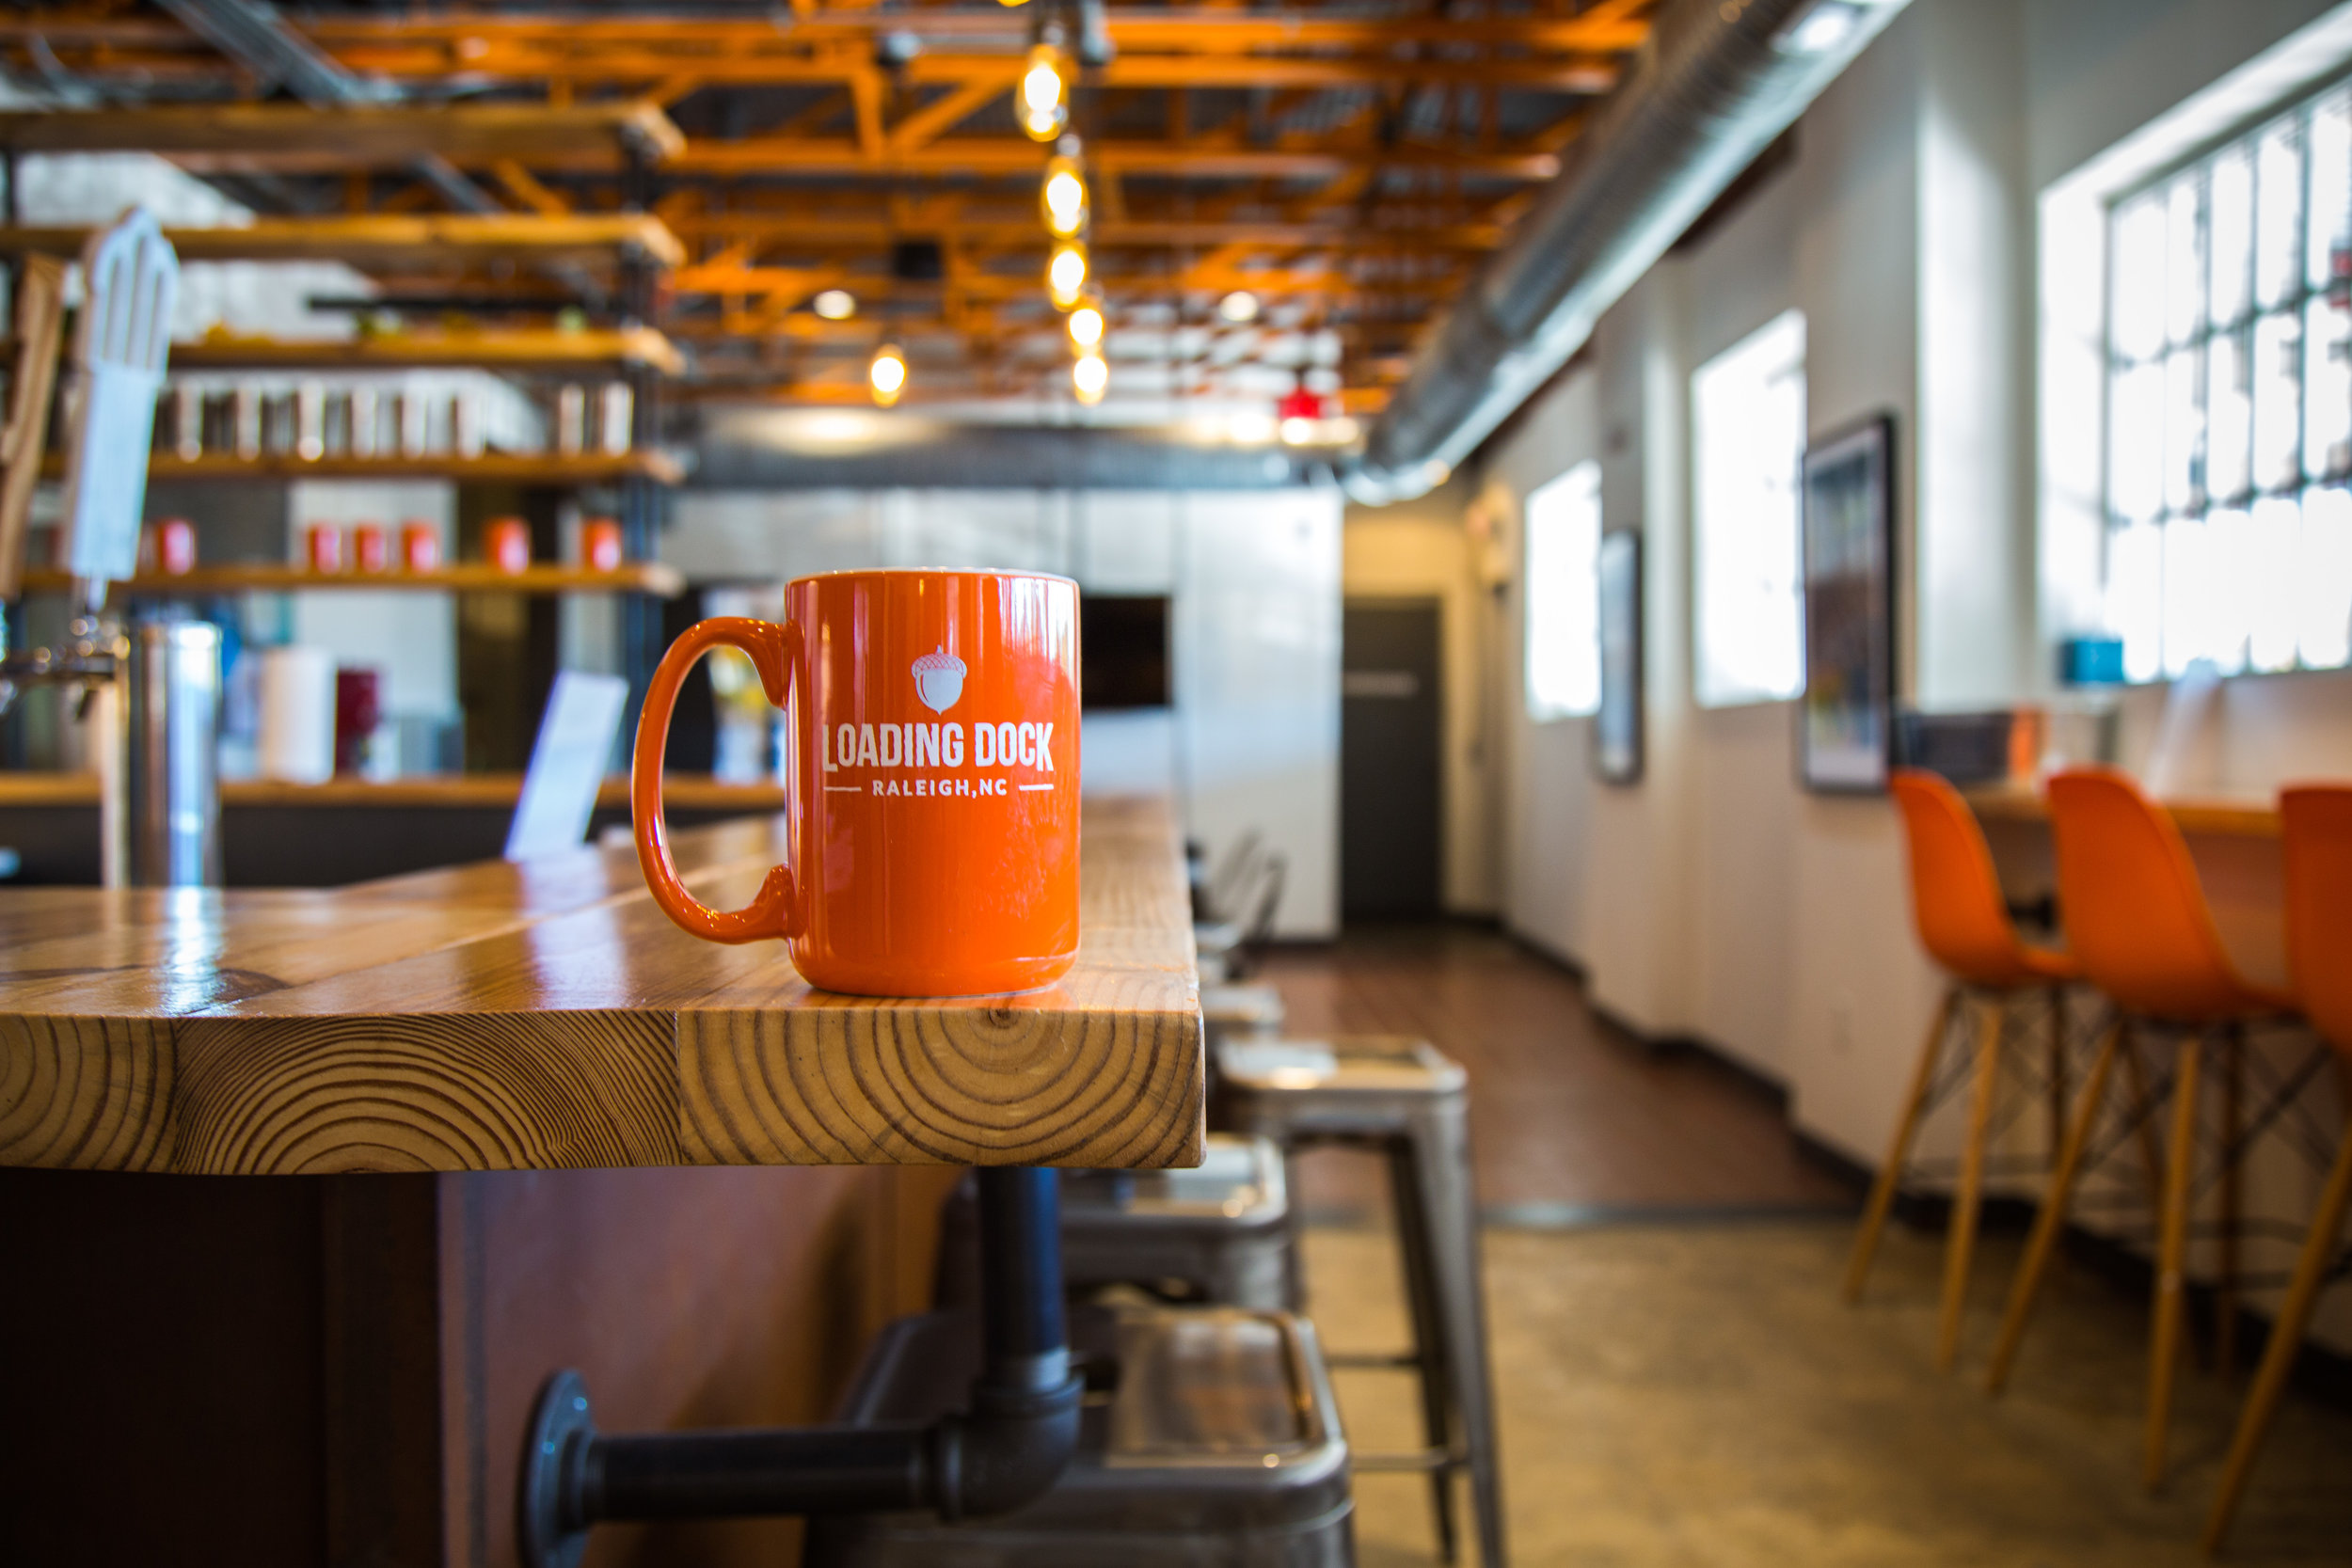 Loading Dock Raleigh expands